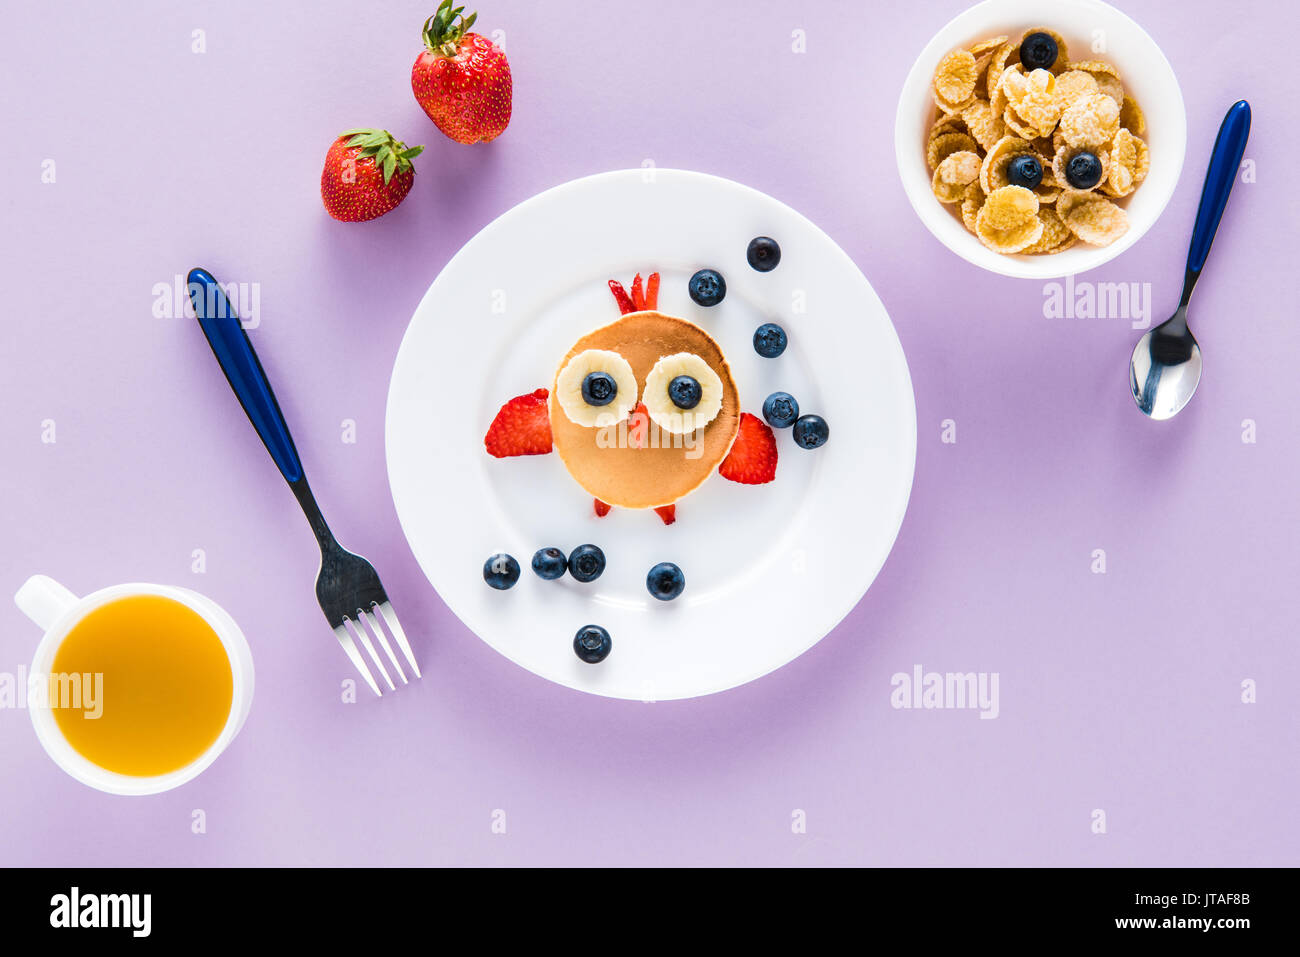 flat lay with creatively styled children's breakfast on colorful tabletop - Stock Image